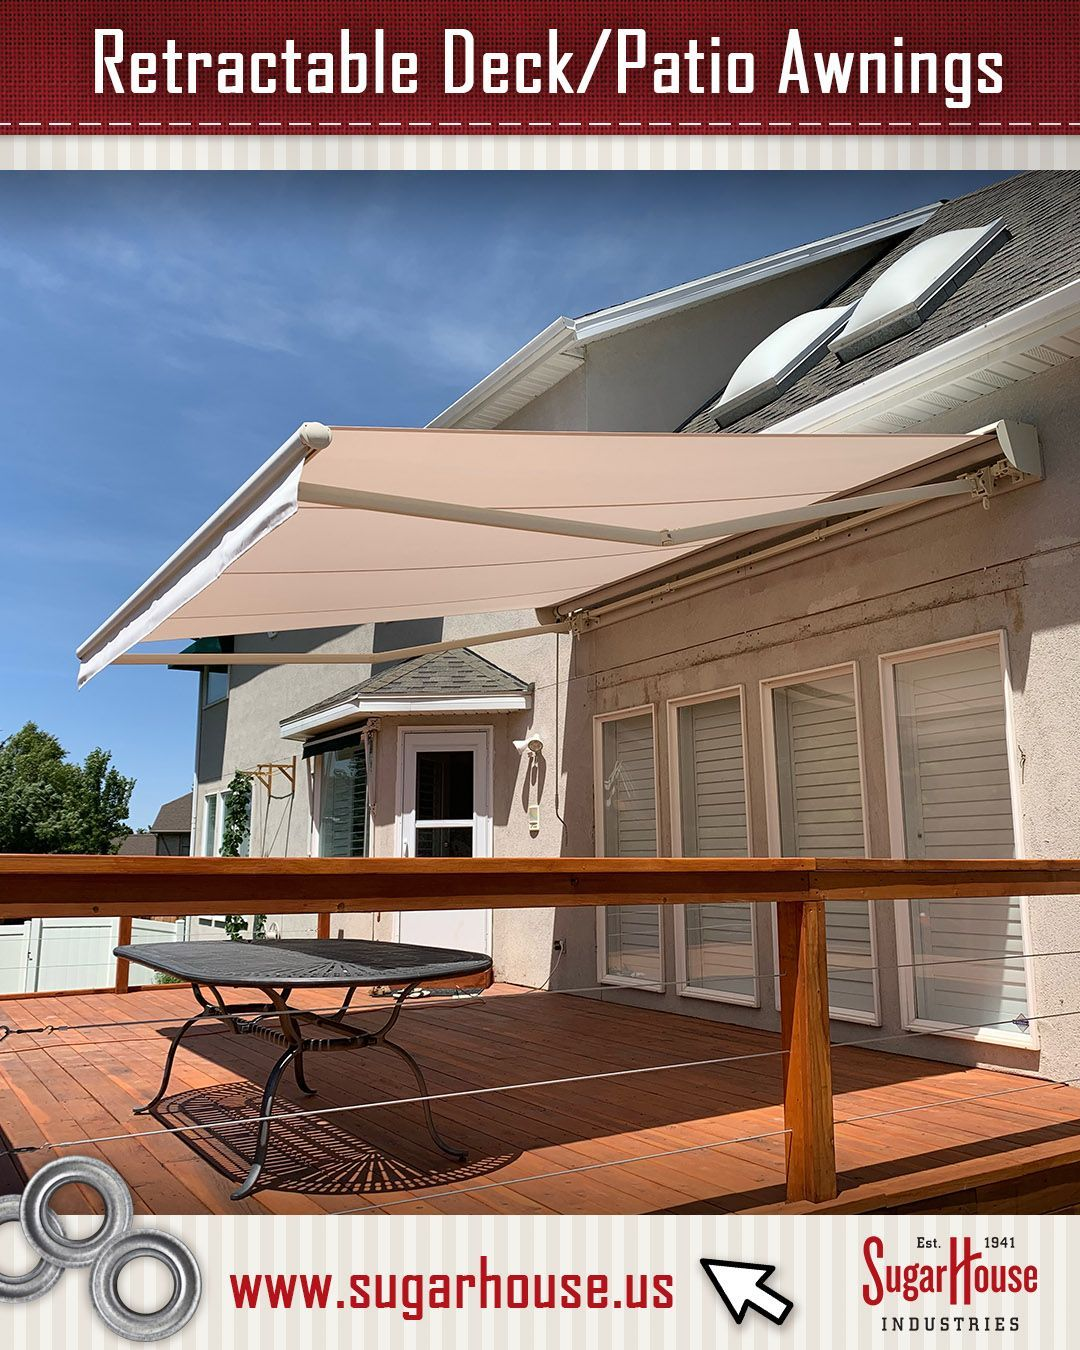 Retractable Awnings Provide Shade When You Want It And Can Roll Up To Let The Sun Shine In Click The Link To See A In 2020 Patio Awning Residential Awnings Awning